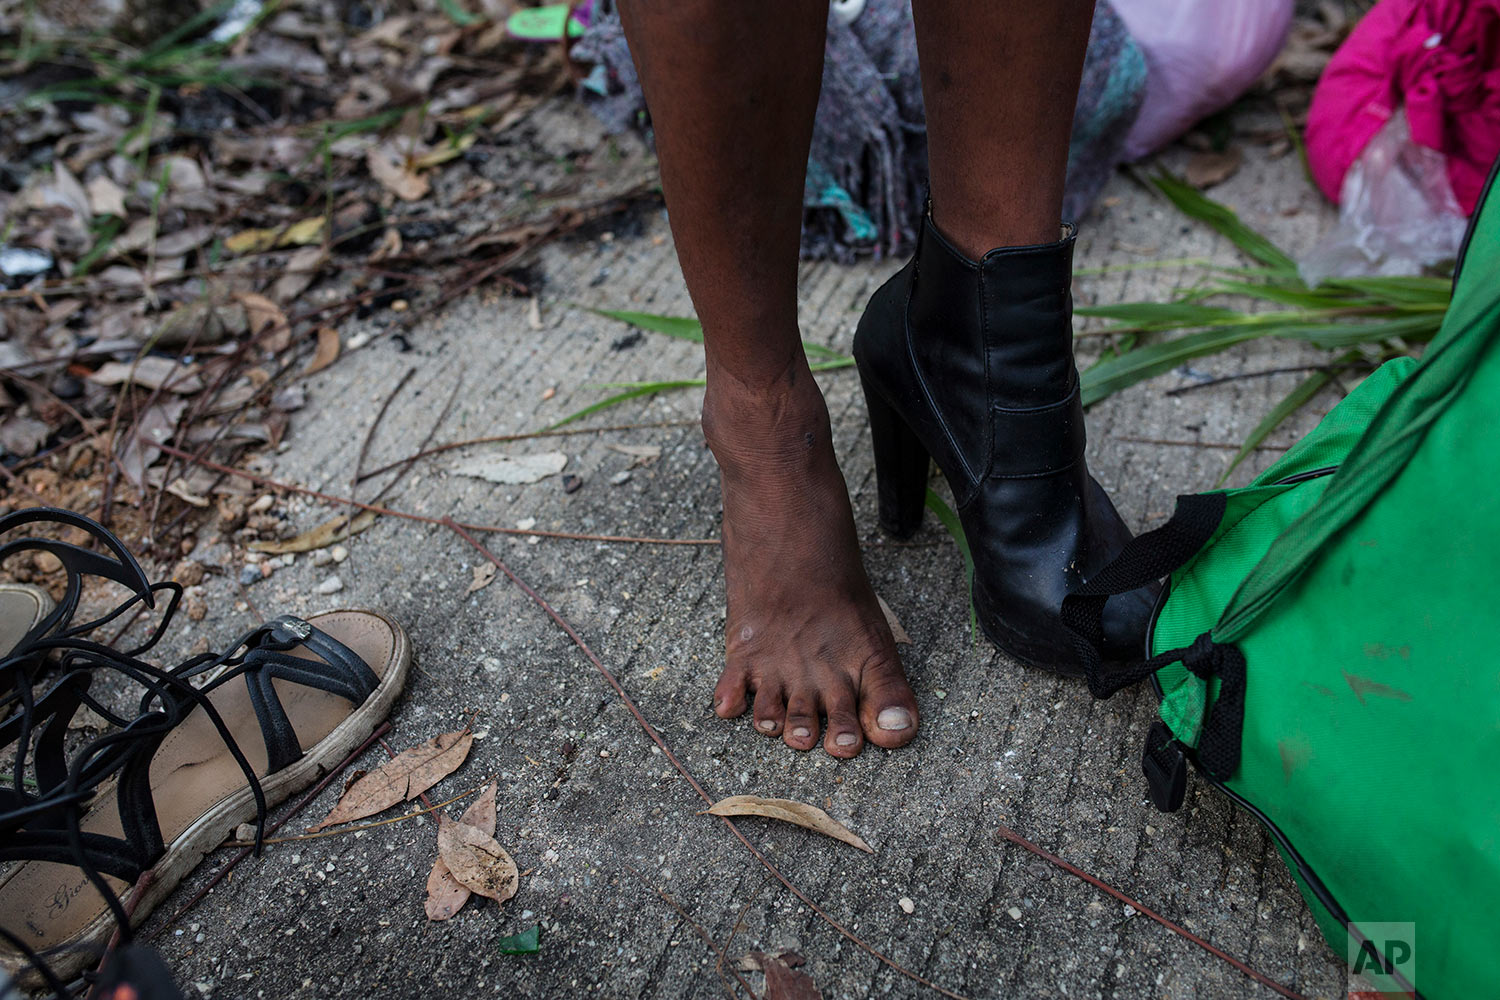 In this Nov. 3, 2018 photo, Honduran transgender Alexa Amaya, who is part of a group of 50 or so LGBTQ migrants traveling with the migrant caravan hoping to reach the U.S. border, tries on donated footwear at a shelter in Sayula, Mexico. (AP Photo/Rodrigo Abd)